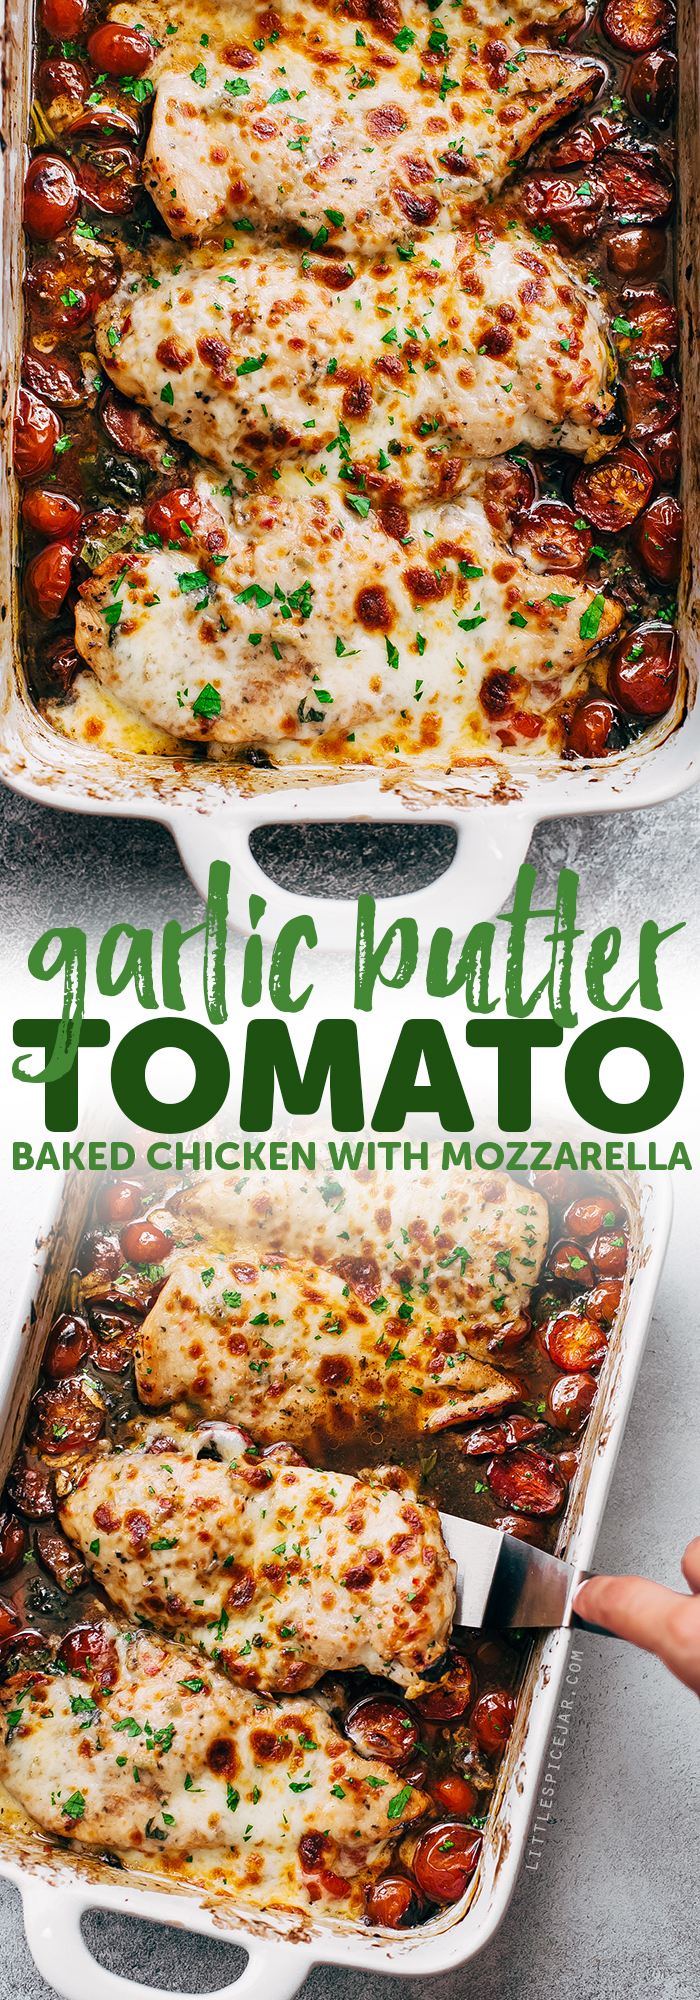 Garlic Butter Tomato Baked Chicken - An easy one dish recipe that requires only a handful of simple ingredients! Easy to prep and ready in NO time! #bakedchicken #chickendinner #chickenrecipes #balsamicbakedchicken #tomatobaked chicken | Littlespicejar.com